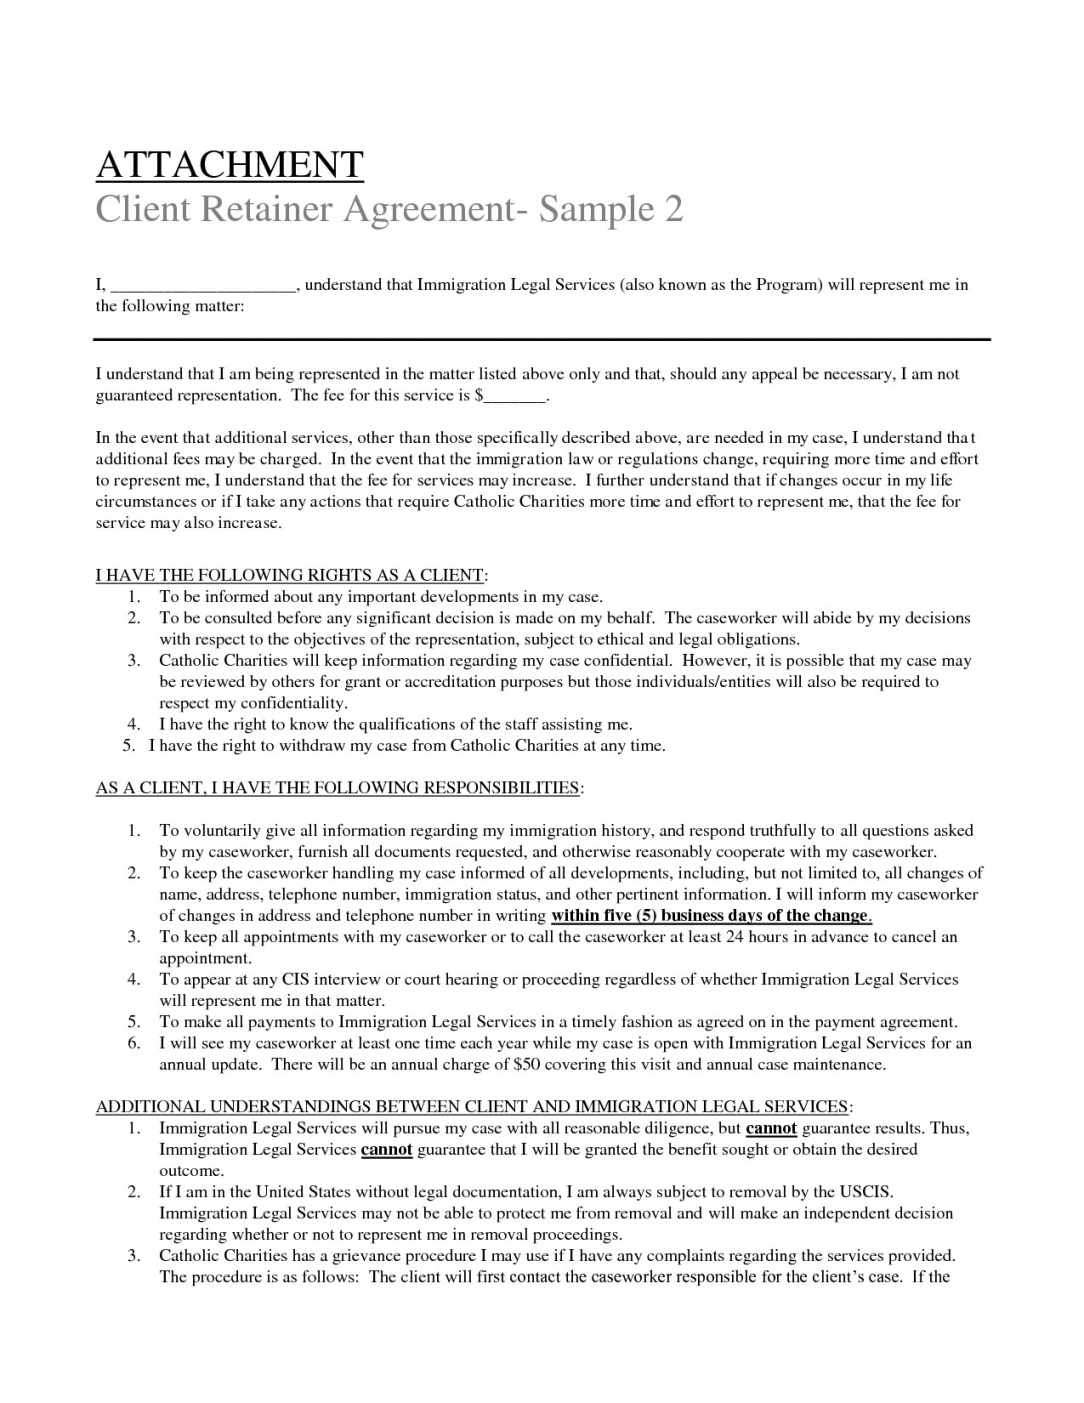 consultant retainer agreement sample  ajancicerosco consulting retainer agreement template pdf